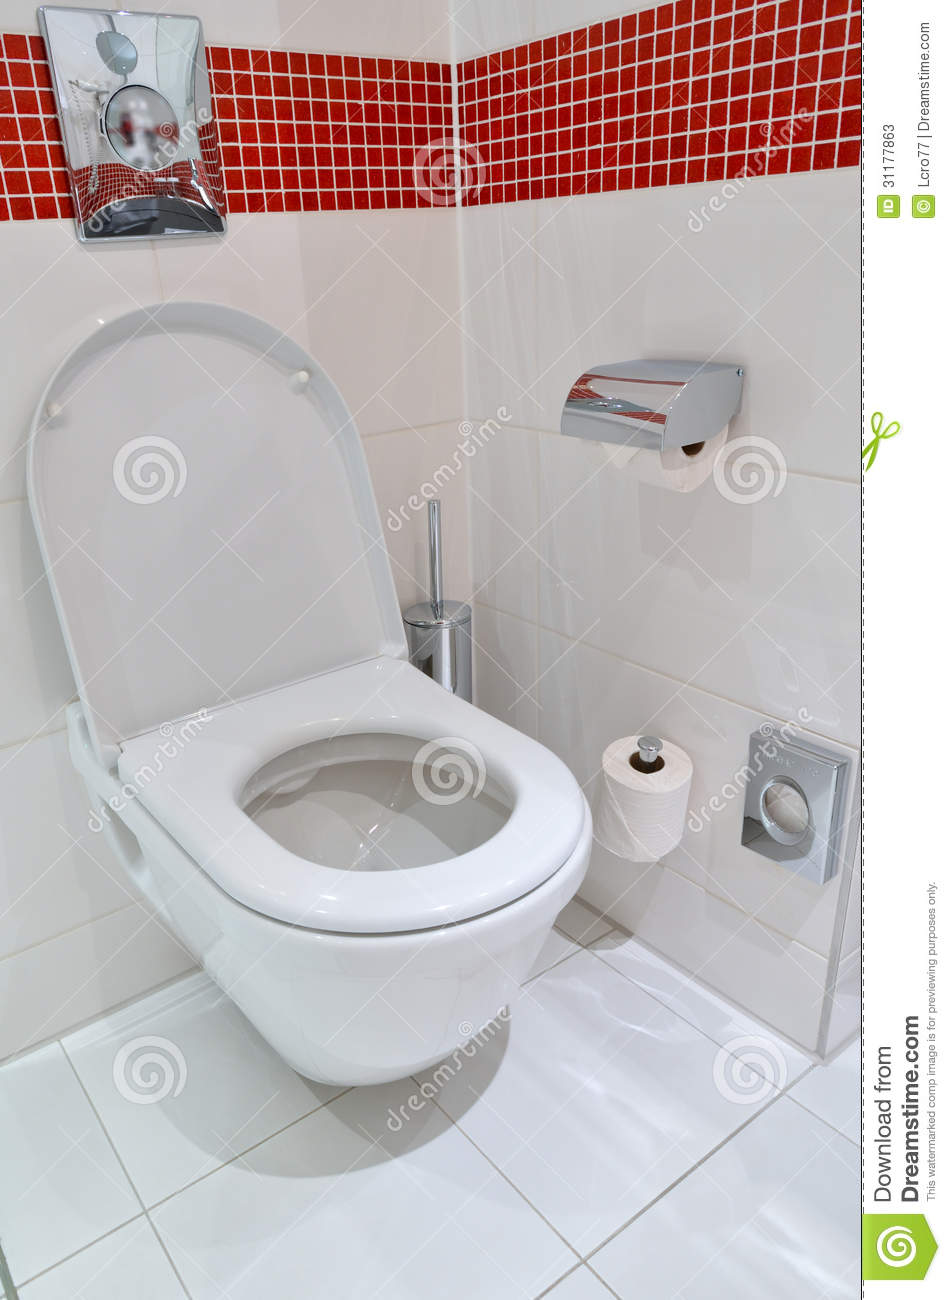 Toilet On The White Floor Tiles